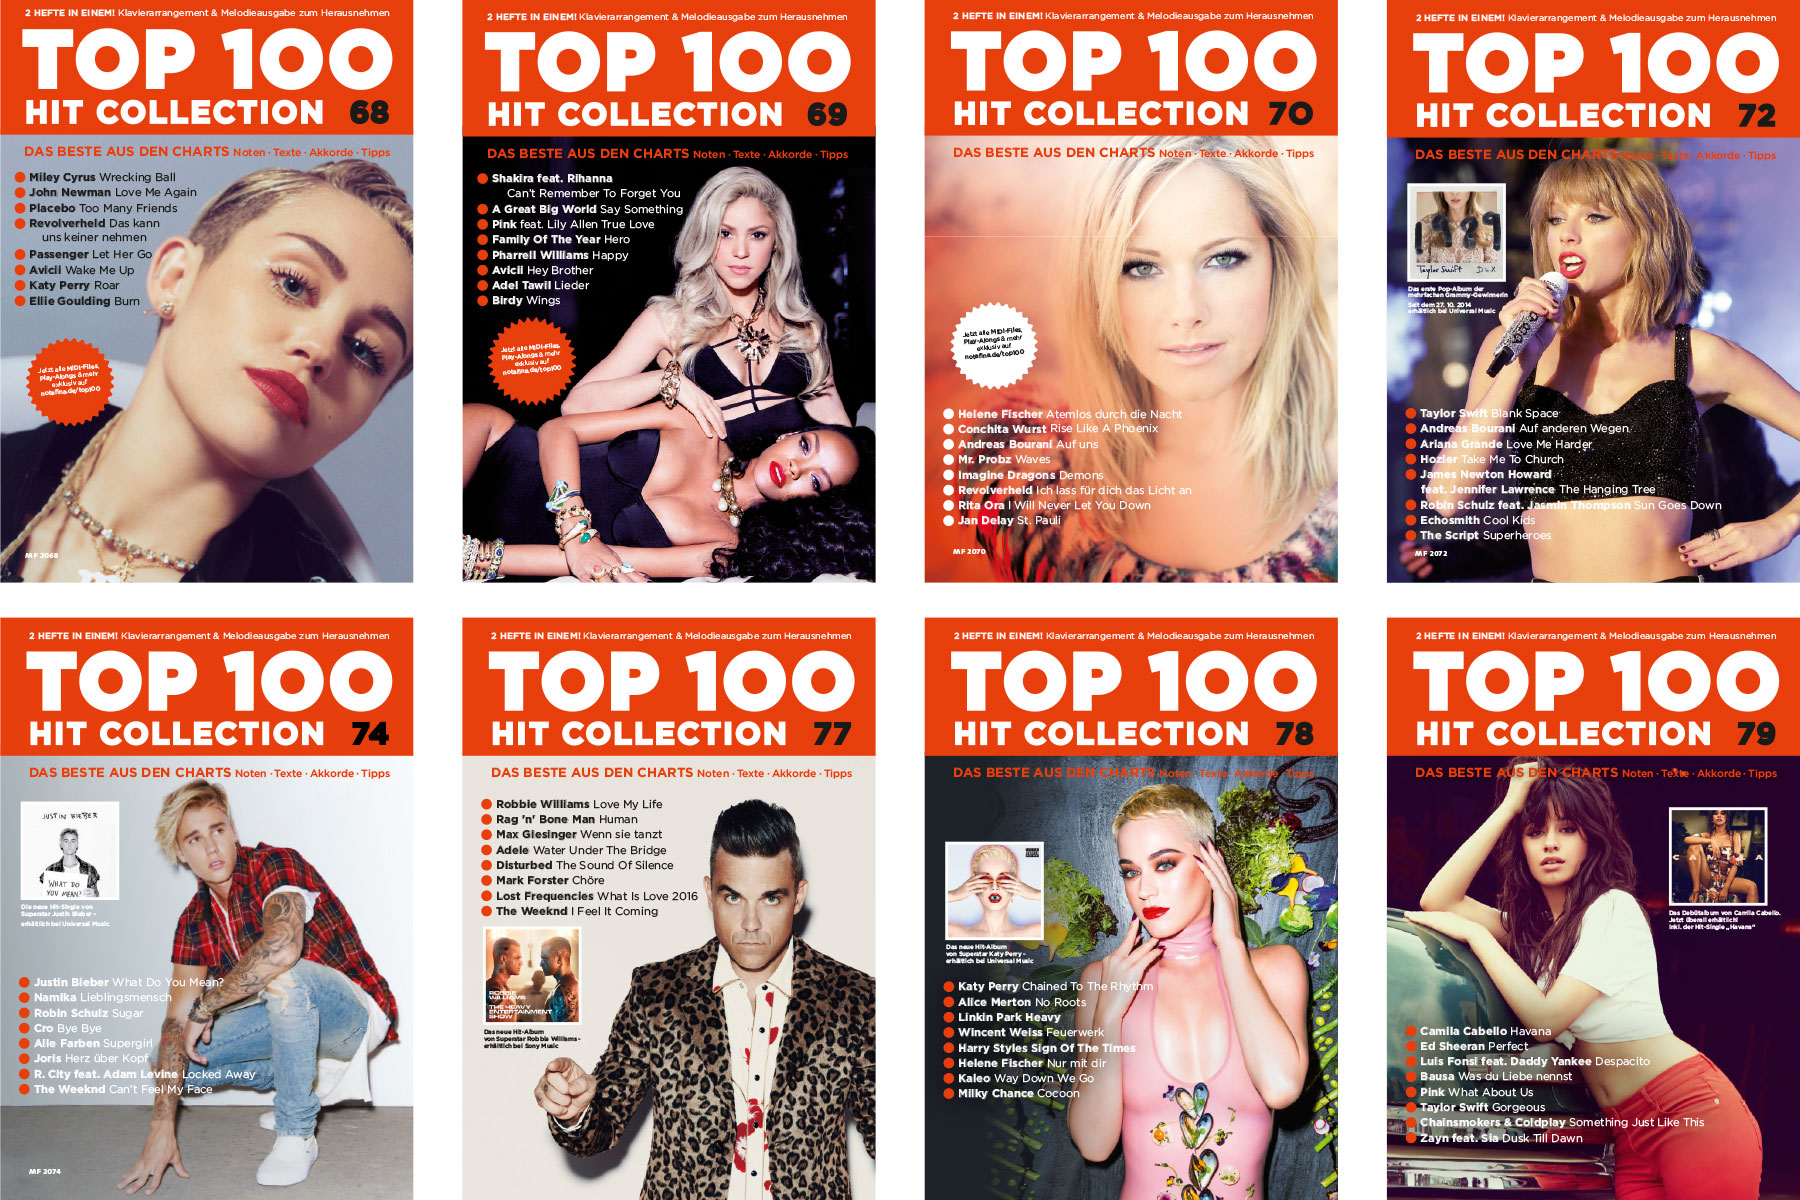 Art Direktion, Coverdesign und Satz der Magazinreihe TOP 100 Hit Collection im auftrag des SCHOTT Verlags, Mainz